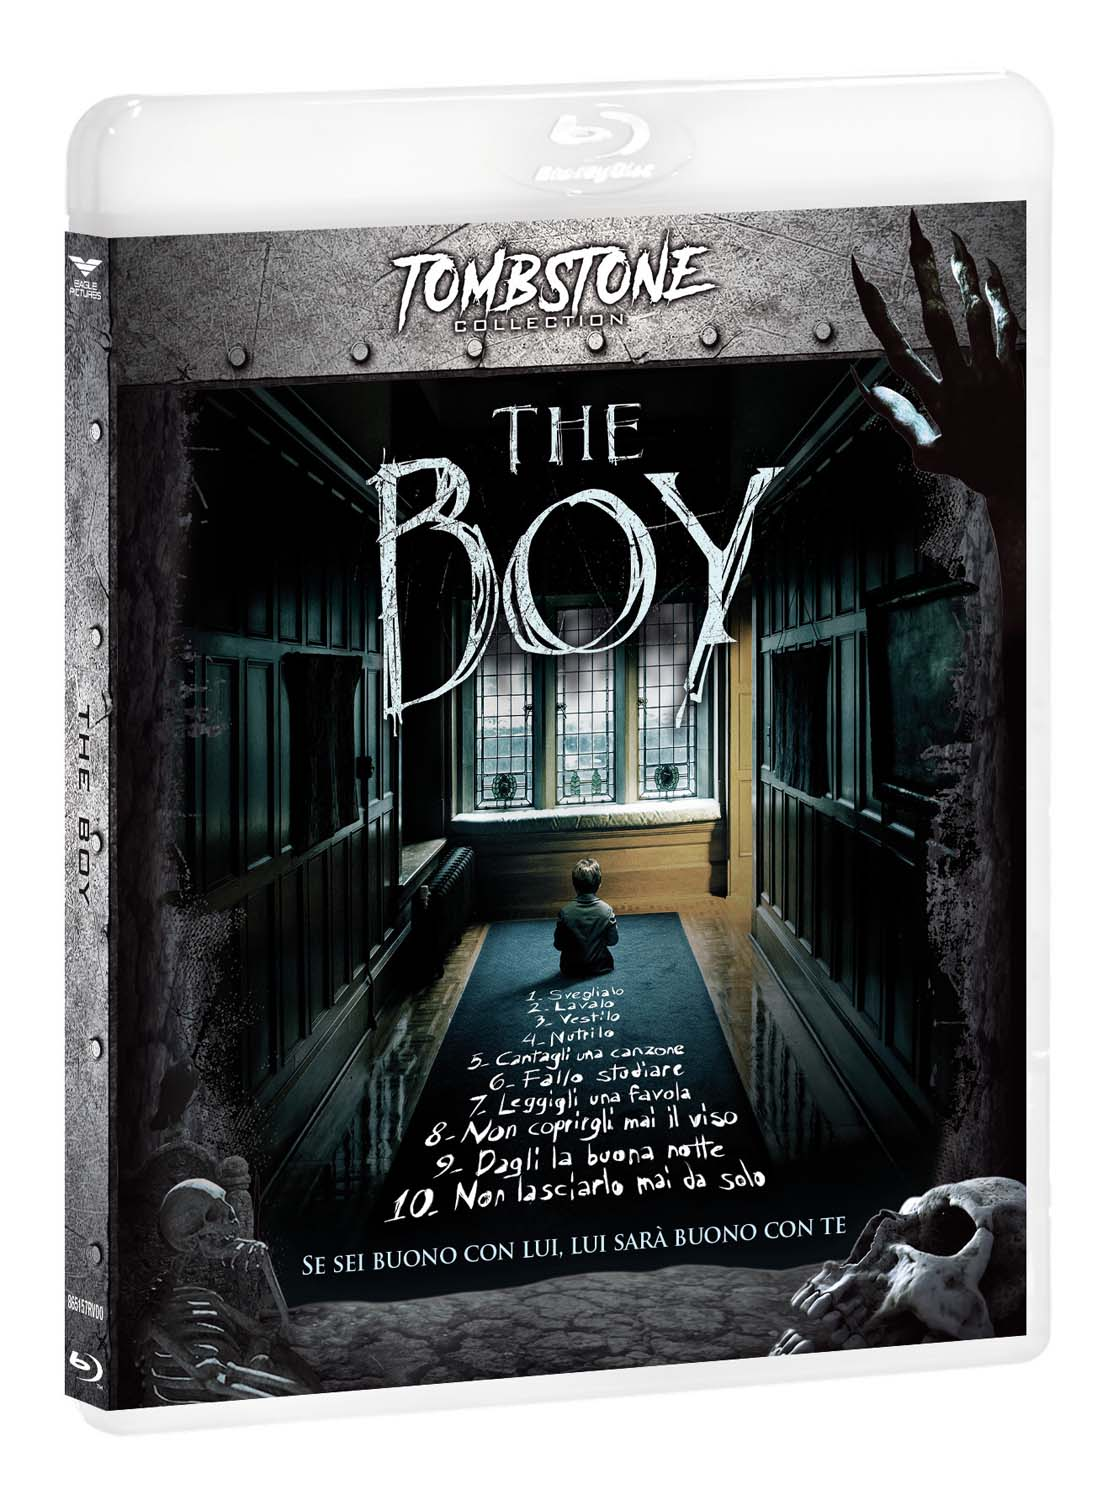 THE BOY (TOMBSTONE) - BLU RAY